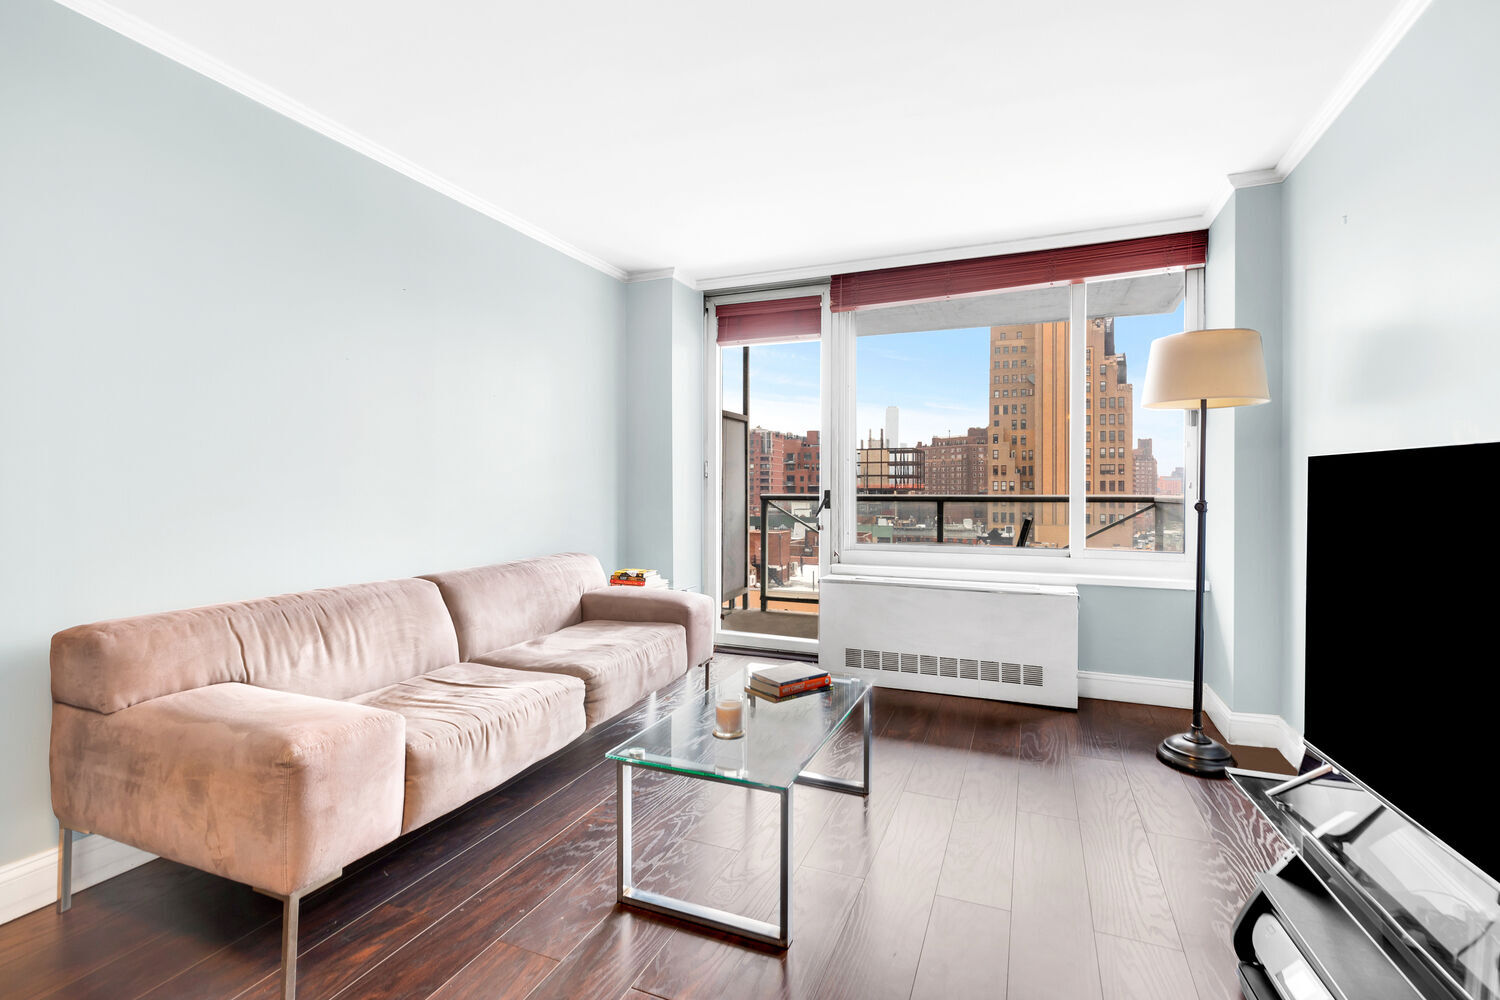 Apartment for sale at 270 West 17th Street, Apt 9F